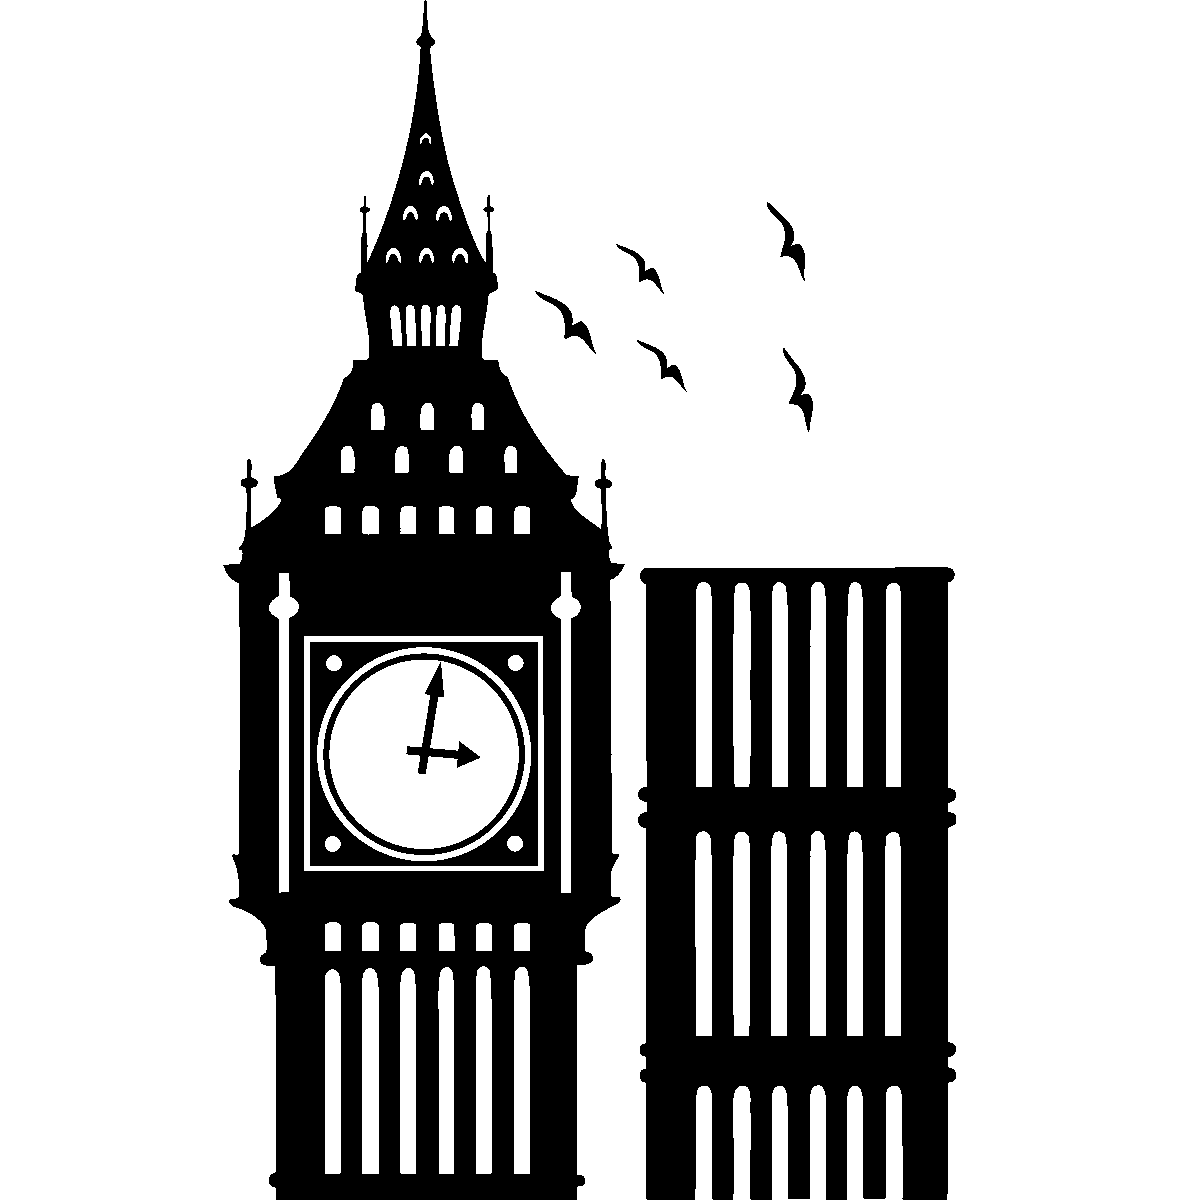 Big Ben clipart Big Inspiration Others Flying Birds